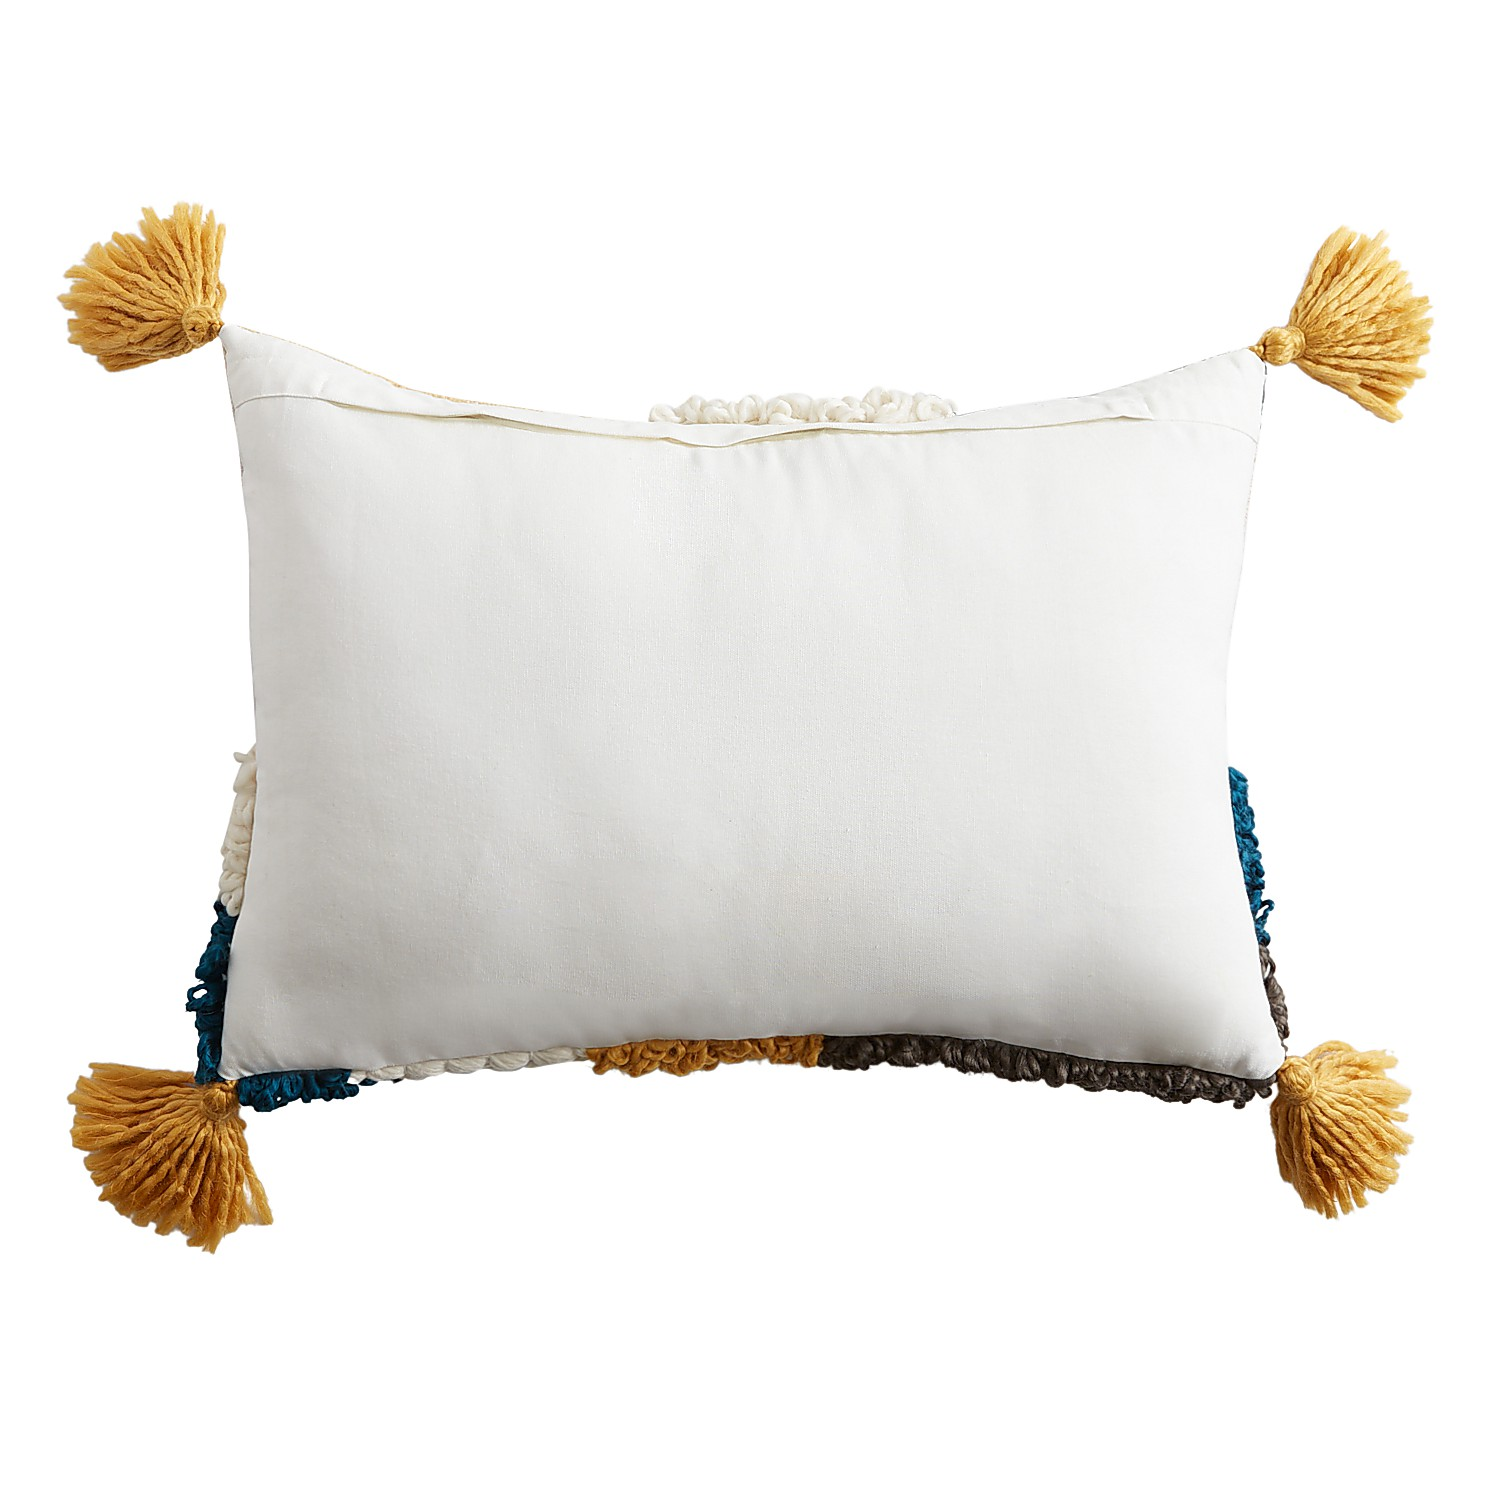 Abstract Tufted Lumbar Pillow with Tassels